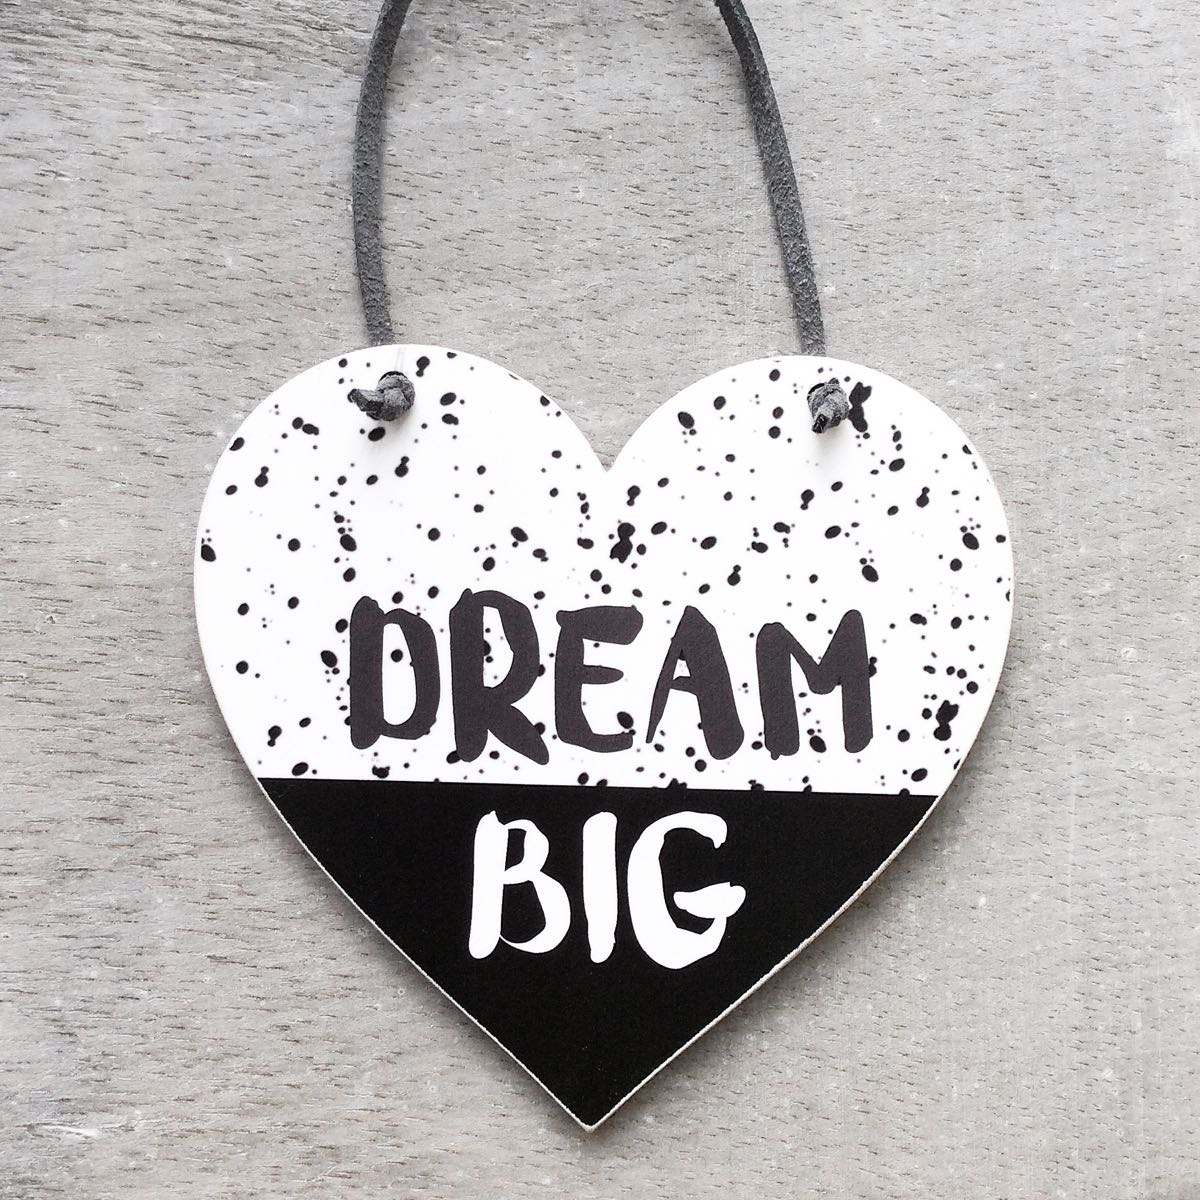 Dream Big Monochrome Heart